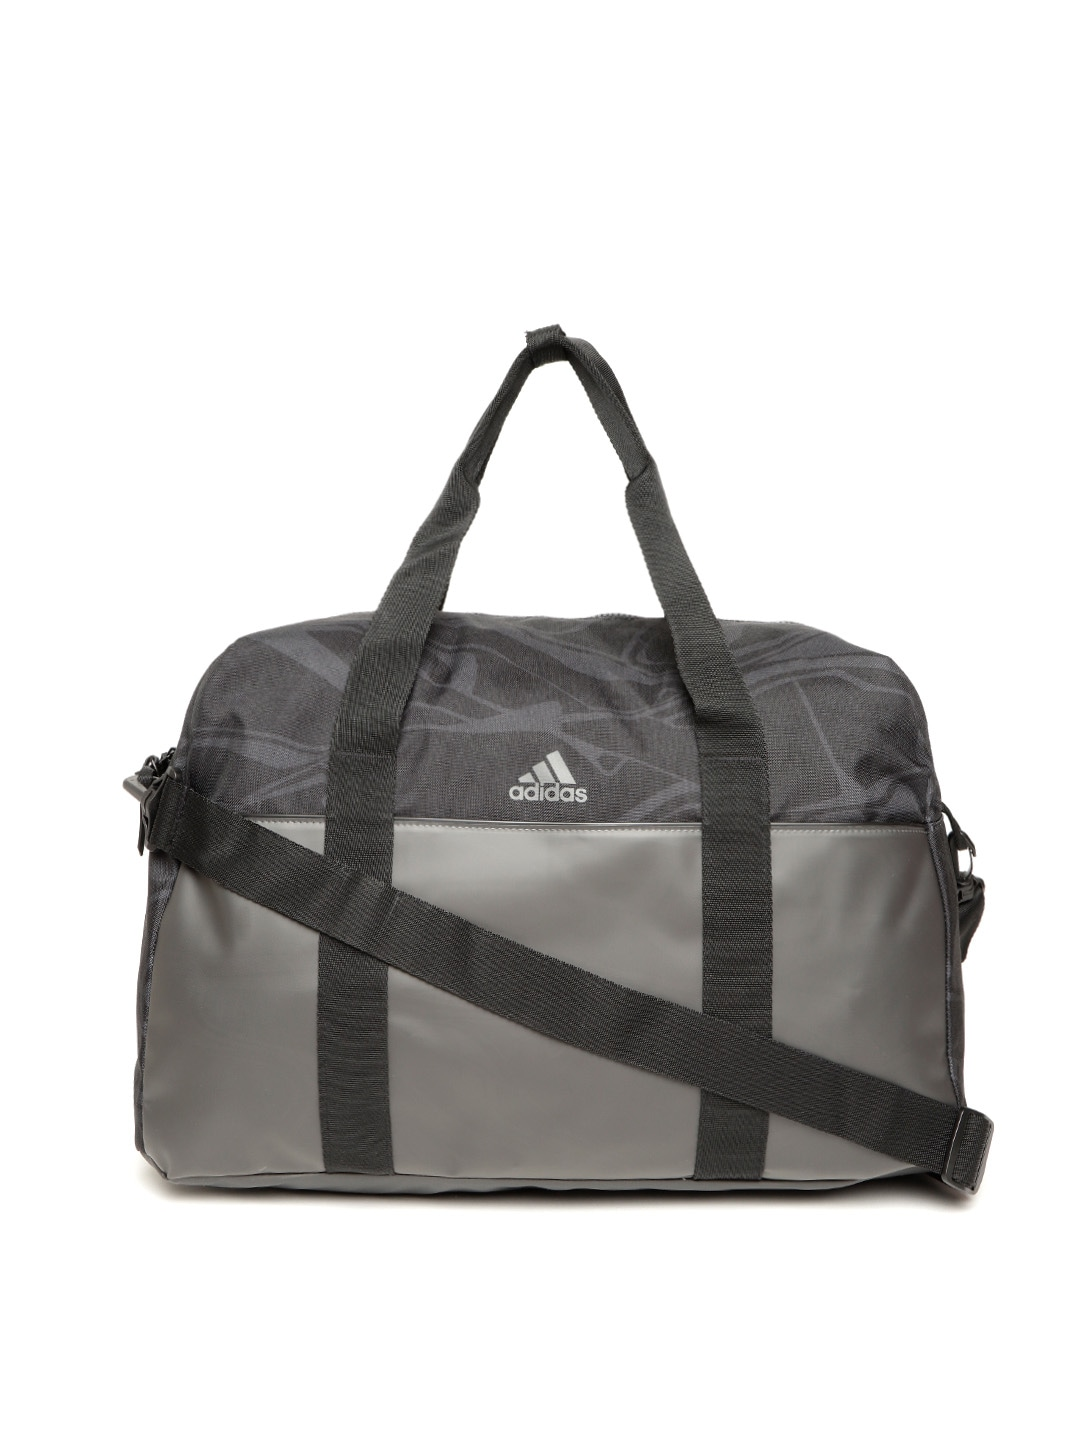 Sport Bag - Buy Sport Bag online in India 20b382d32670c